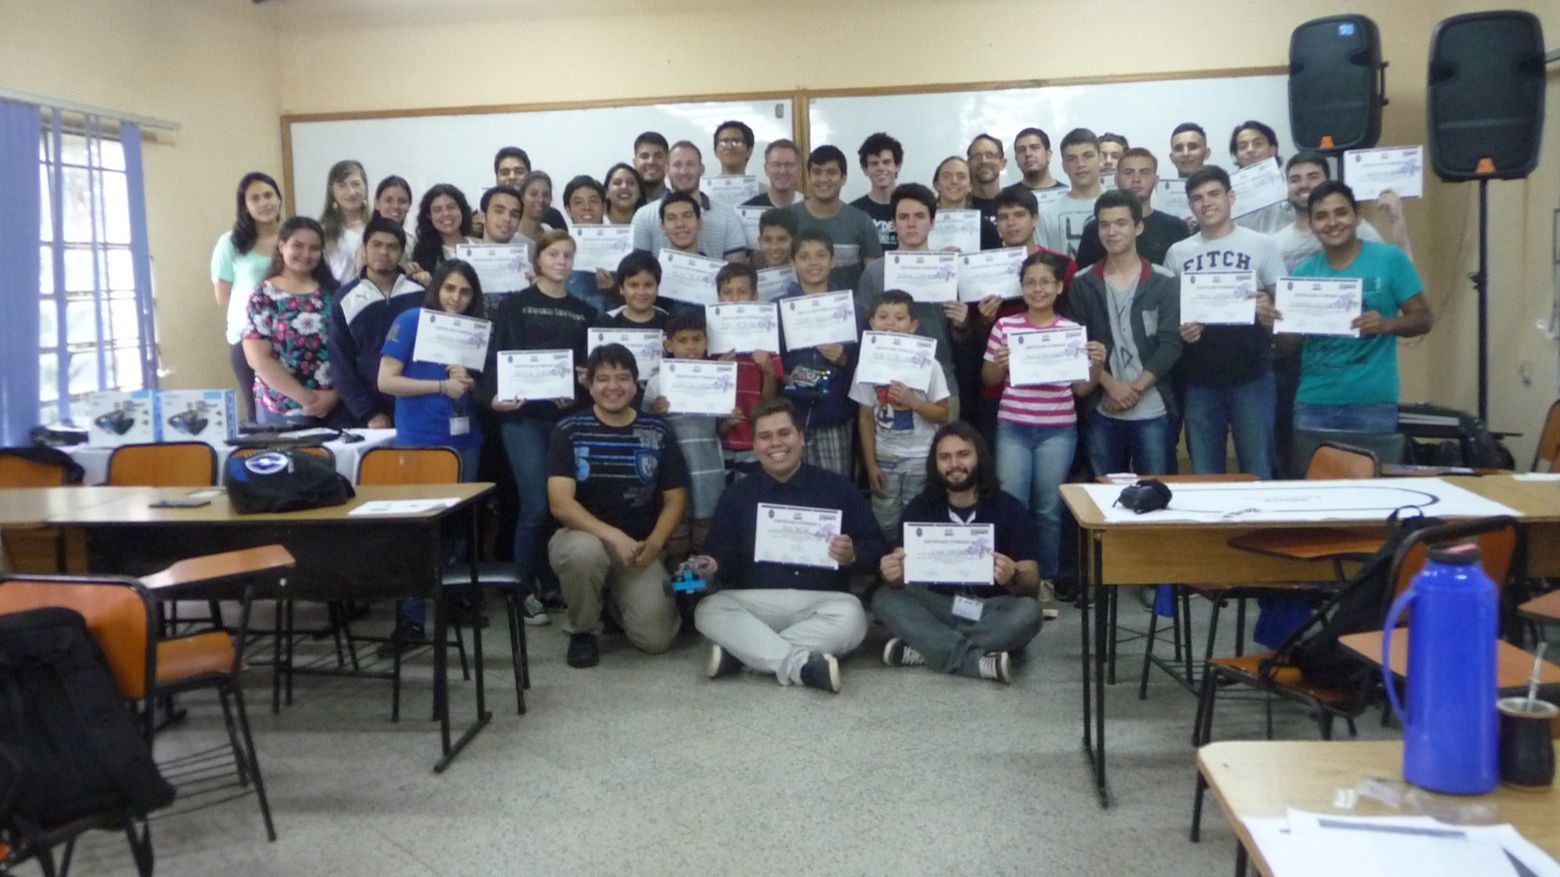 Poway High's Team Spyder offers robotics mentoring to students in Paraguay